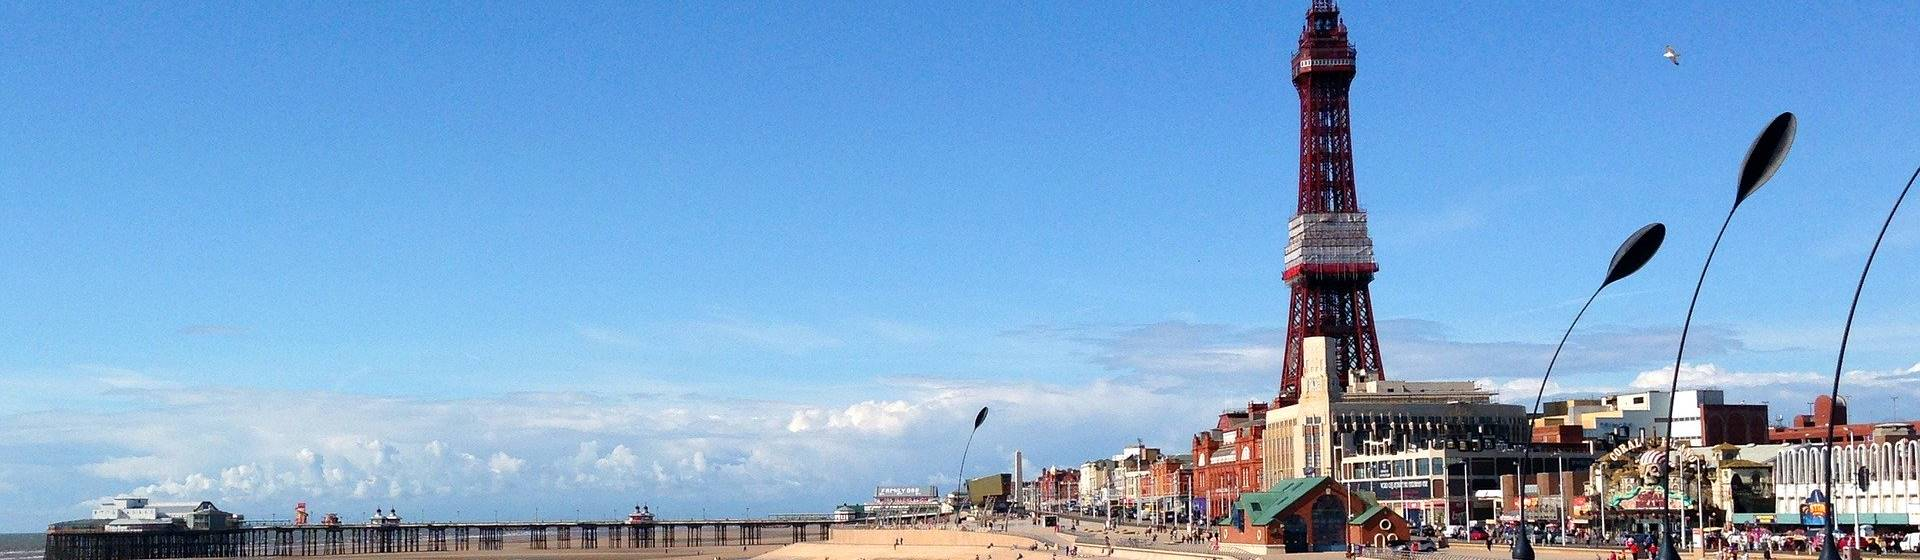 Blackpool - A British Seaside Favouritte